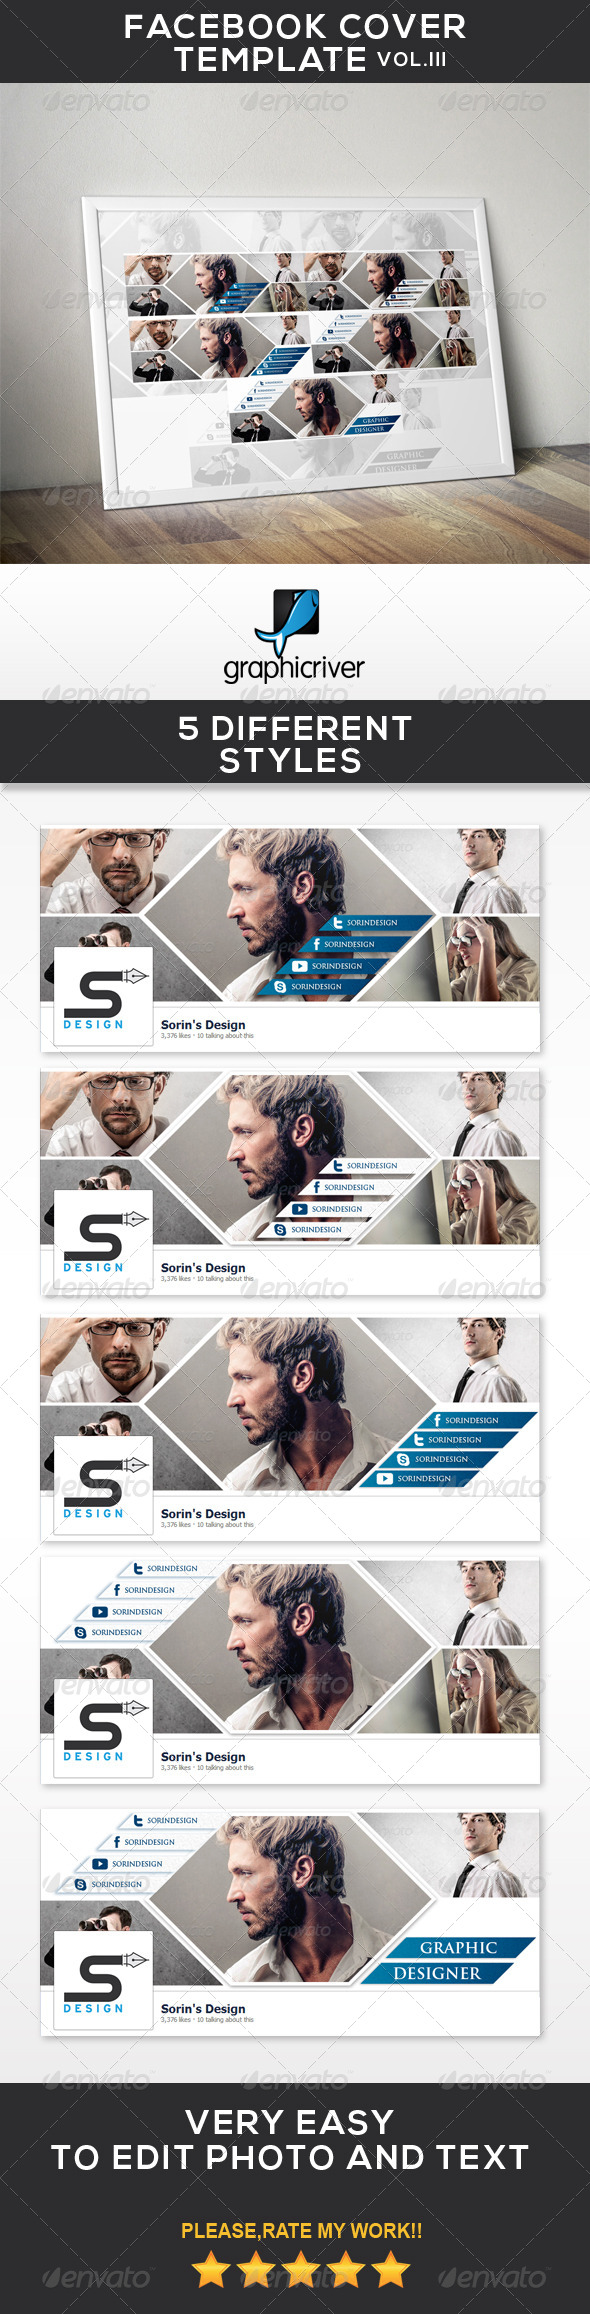 GraphicRiver Facebook Cover Template Vol.III 7076369